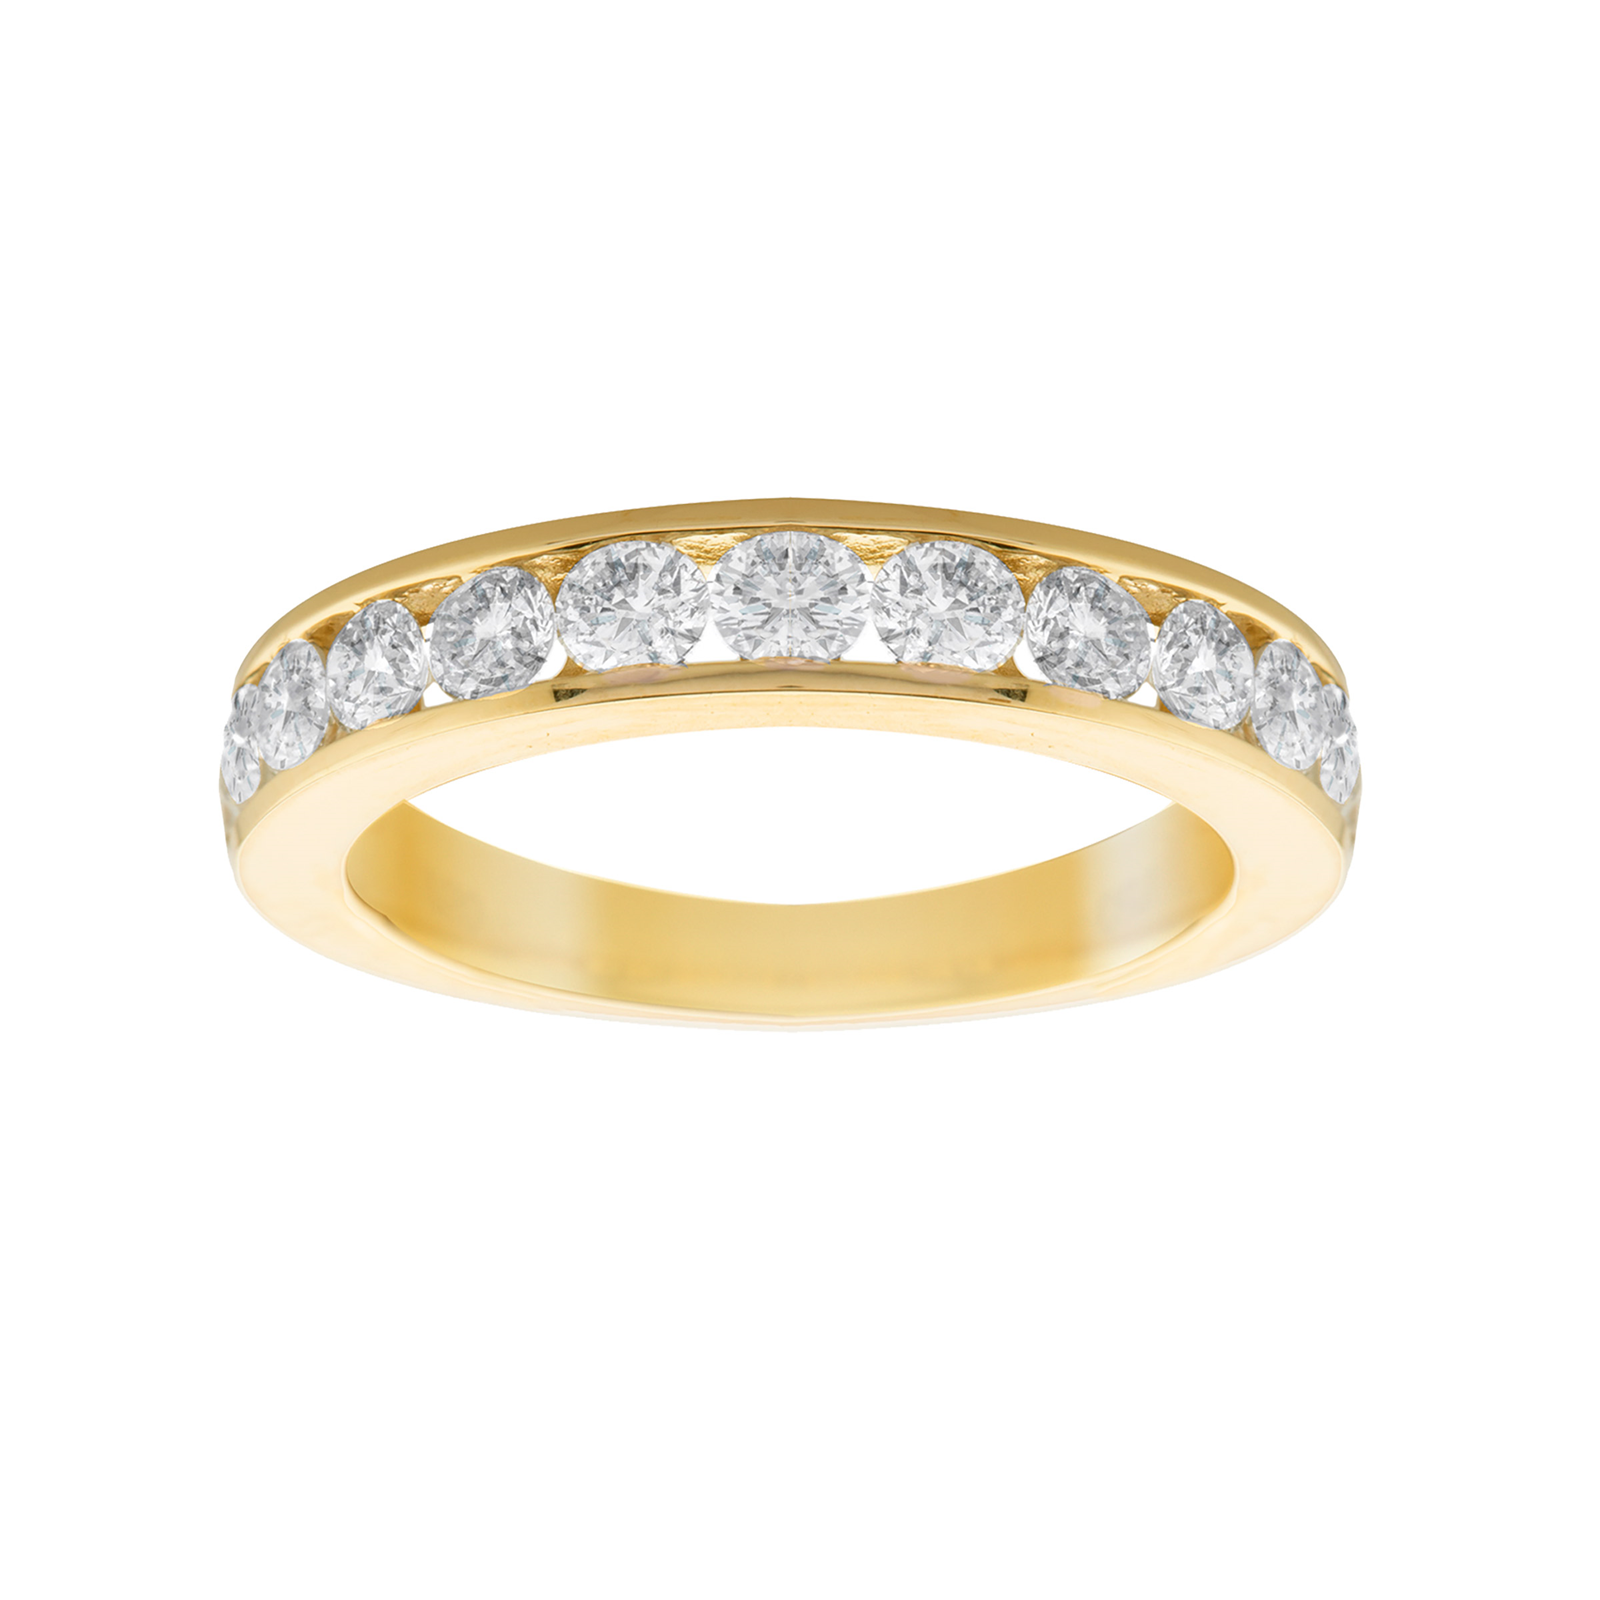 18ct Yellow Gold 1.00ct Diamond 13 Stone Eternity Ring - Ring Size L